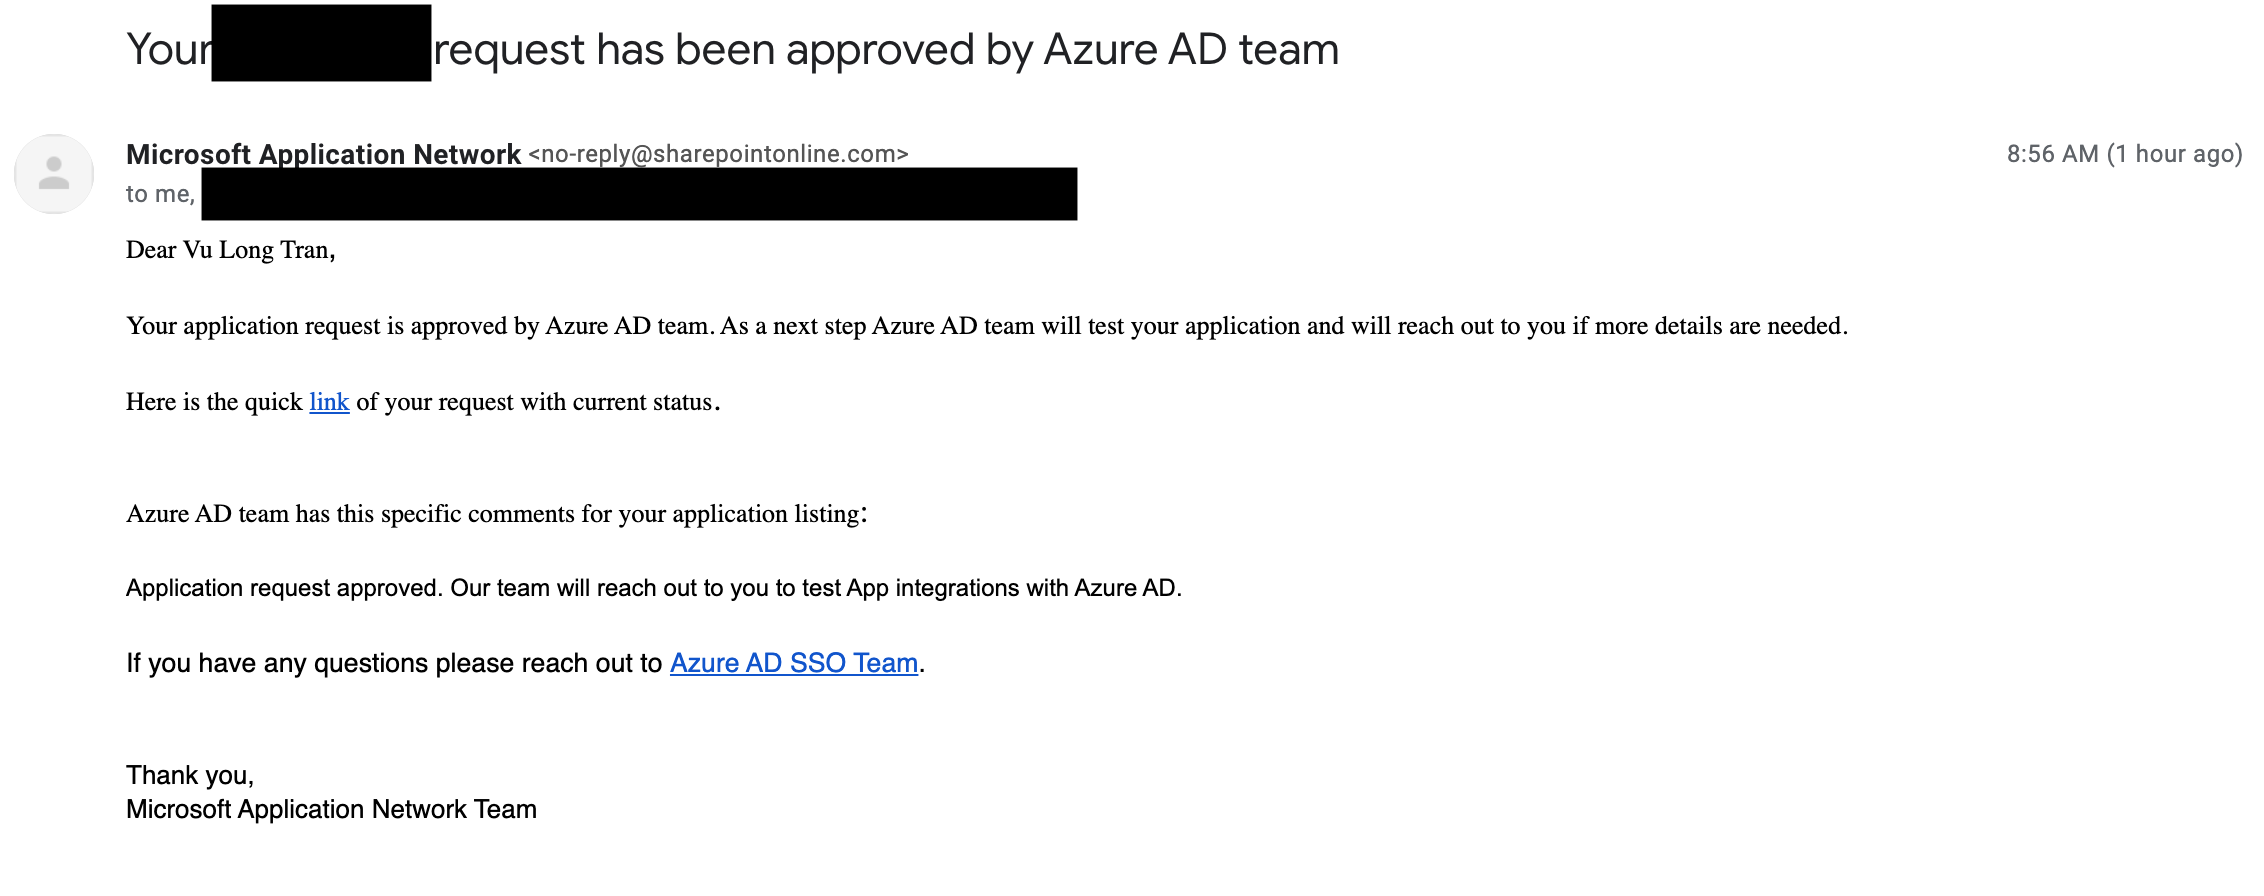 Microsoft Application Network submission approval